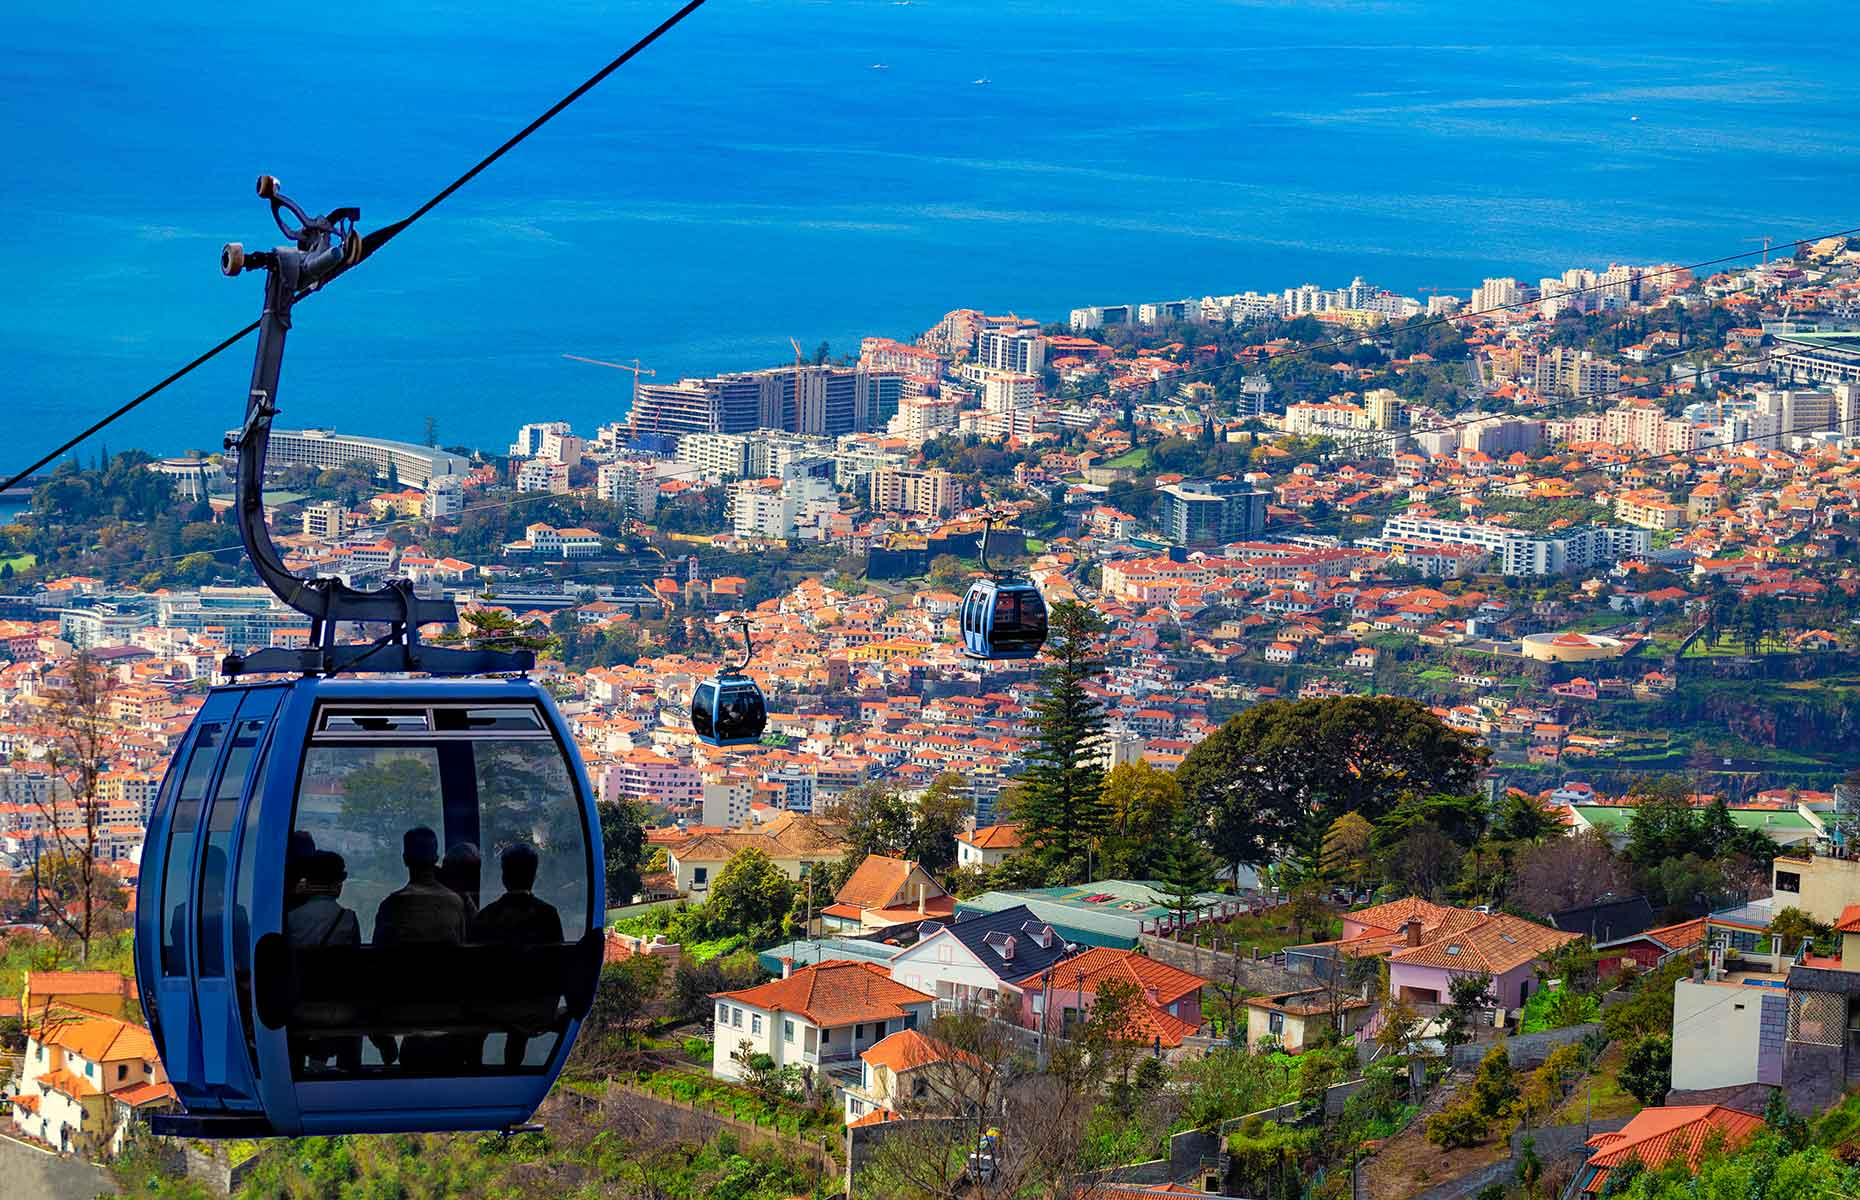 The cable car to Monte (Image: Cristian Balate/Shutterstock)